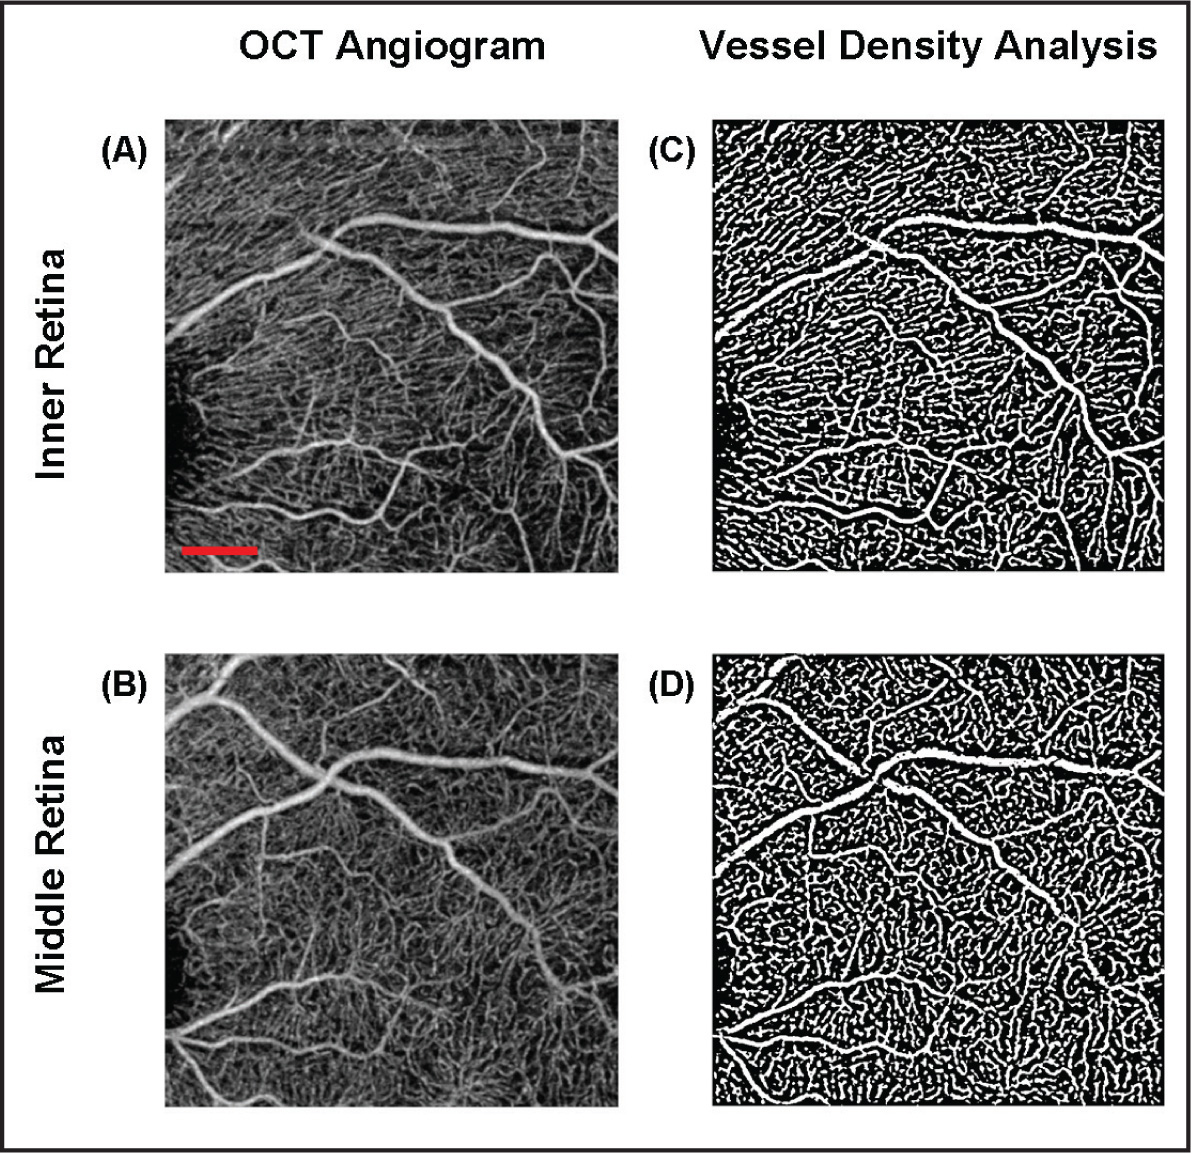 OCT angiogram and vessel density analysis of a 3 × 3 mm2 area in the nasal macular region of a healthy subject. En face representation of the retinal vessels in the (A) inner retinal layer show linear radiating patterns of capillaries emanating from the disc that appear to run a parallel course to ganglion nerve axons. Note that part of the major vessel in the upper left of the panel is deeper to the retina as it emerges from the nerve and only shows up clearly in the middle retinal layers in that region. (B) En face representation of the retinal vessels in the middle retinal layer do not demonstrate as strong a radiating pattern. (C,D) Contrast enhanced images of the respective retinal regions in (A) and (B). (C) Vessel density analysis of the inner retina showed an average total density of 31.59% ± 1.40%. (D) Vessel density analysis of the middle retina showed an average total density of 31.47% ± 1.62%. The scale bar in (A) shows a distance of 500 µm. This scale applies to (A–D).